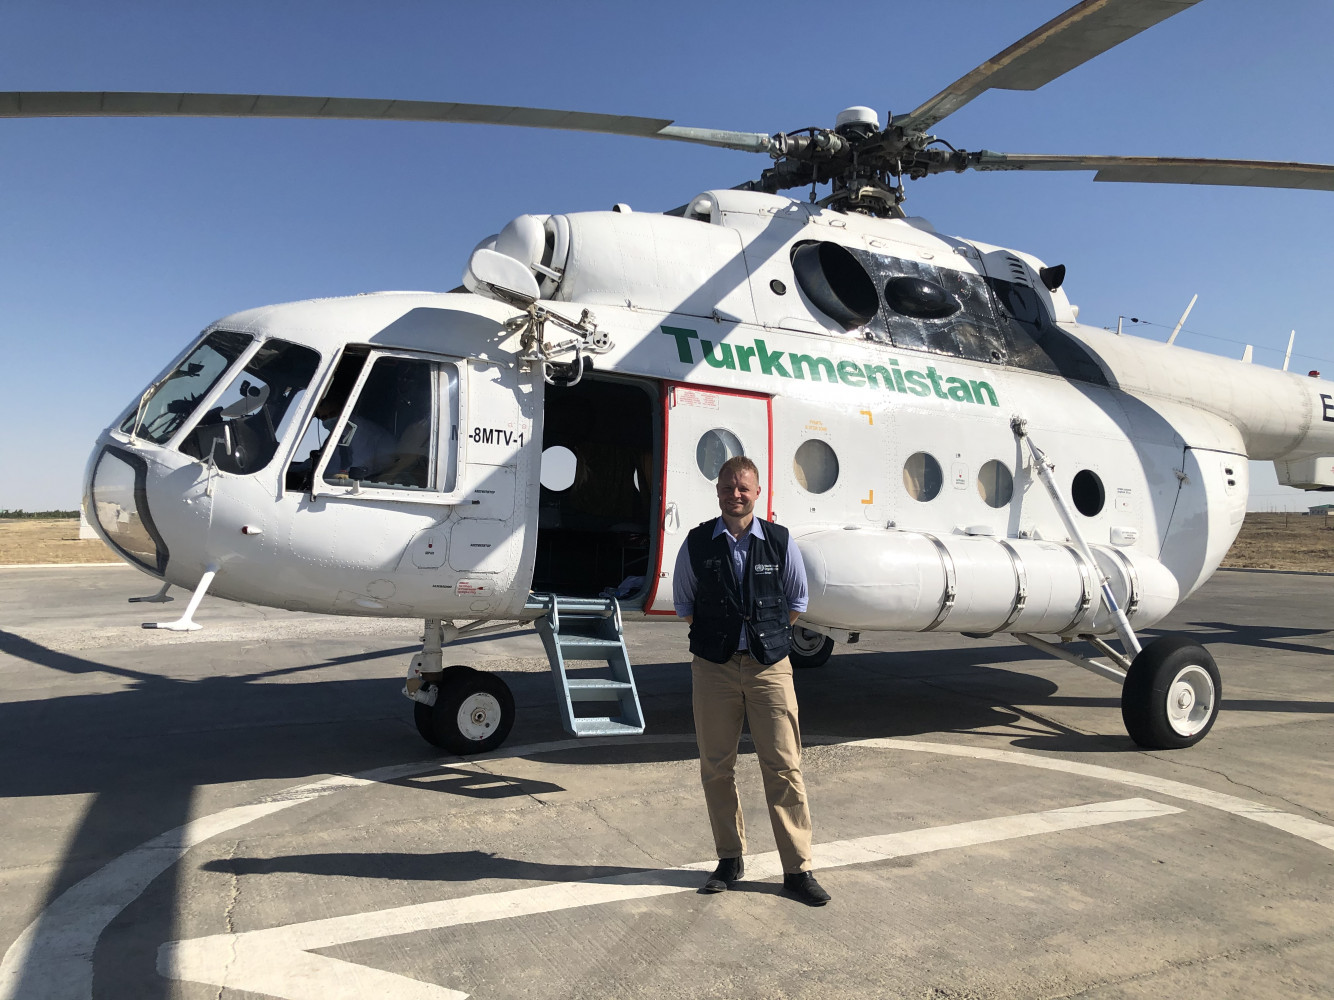 Dr Fielding in front of our helicopter transport to the Turkmenistan border crossing with Afghanistan.